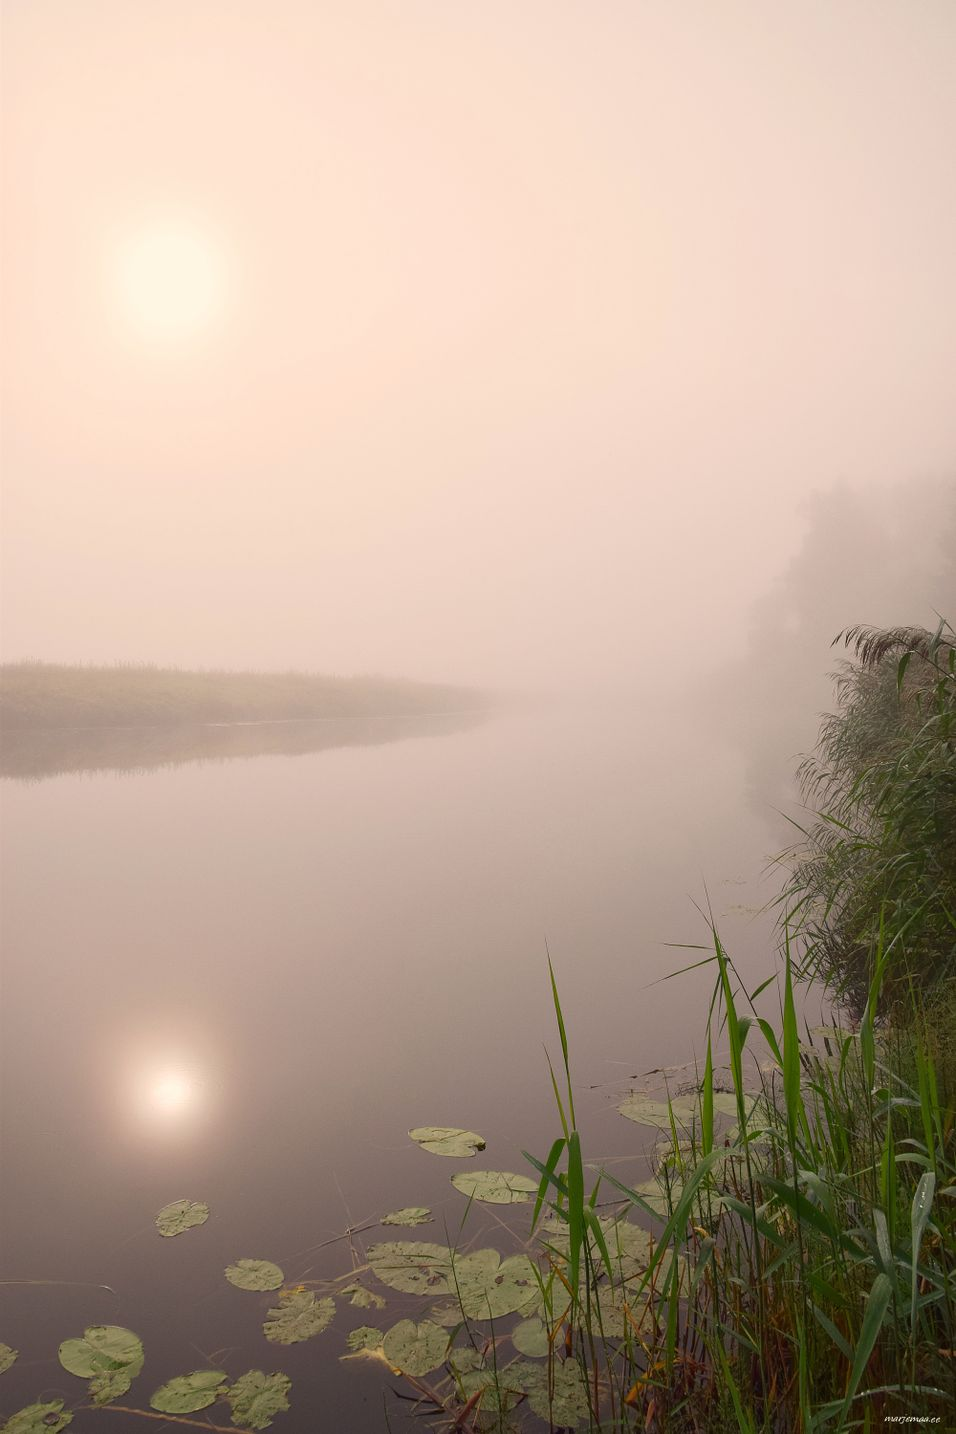 Foggy morning on the river.